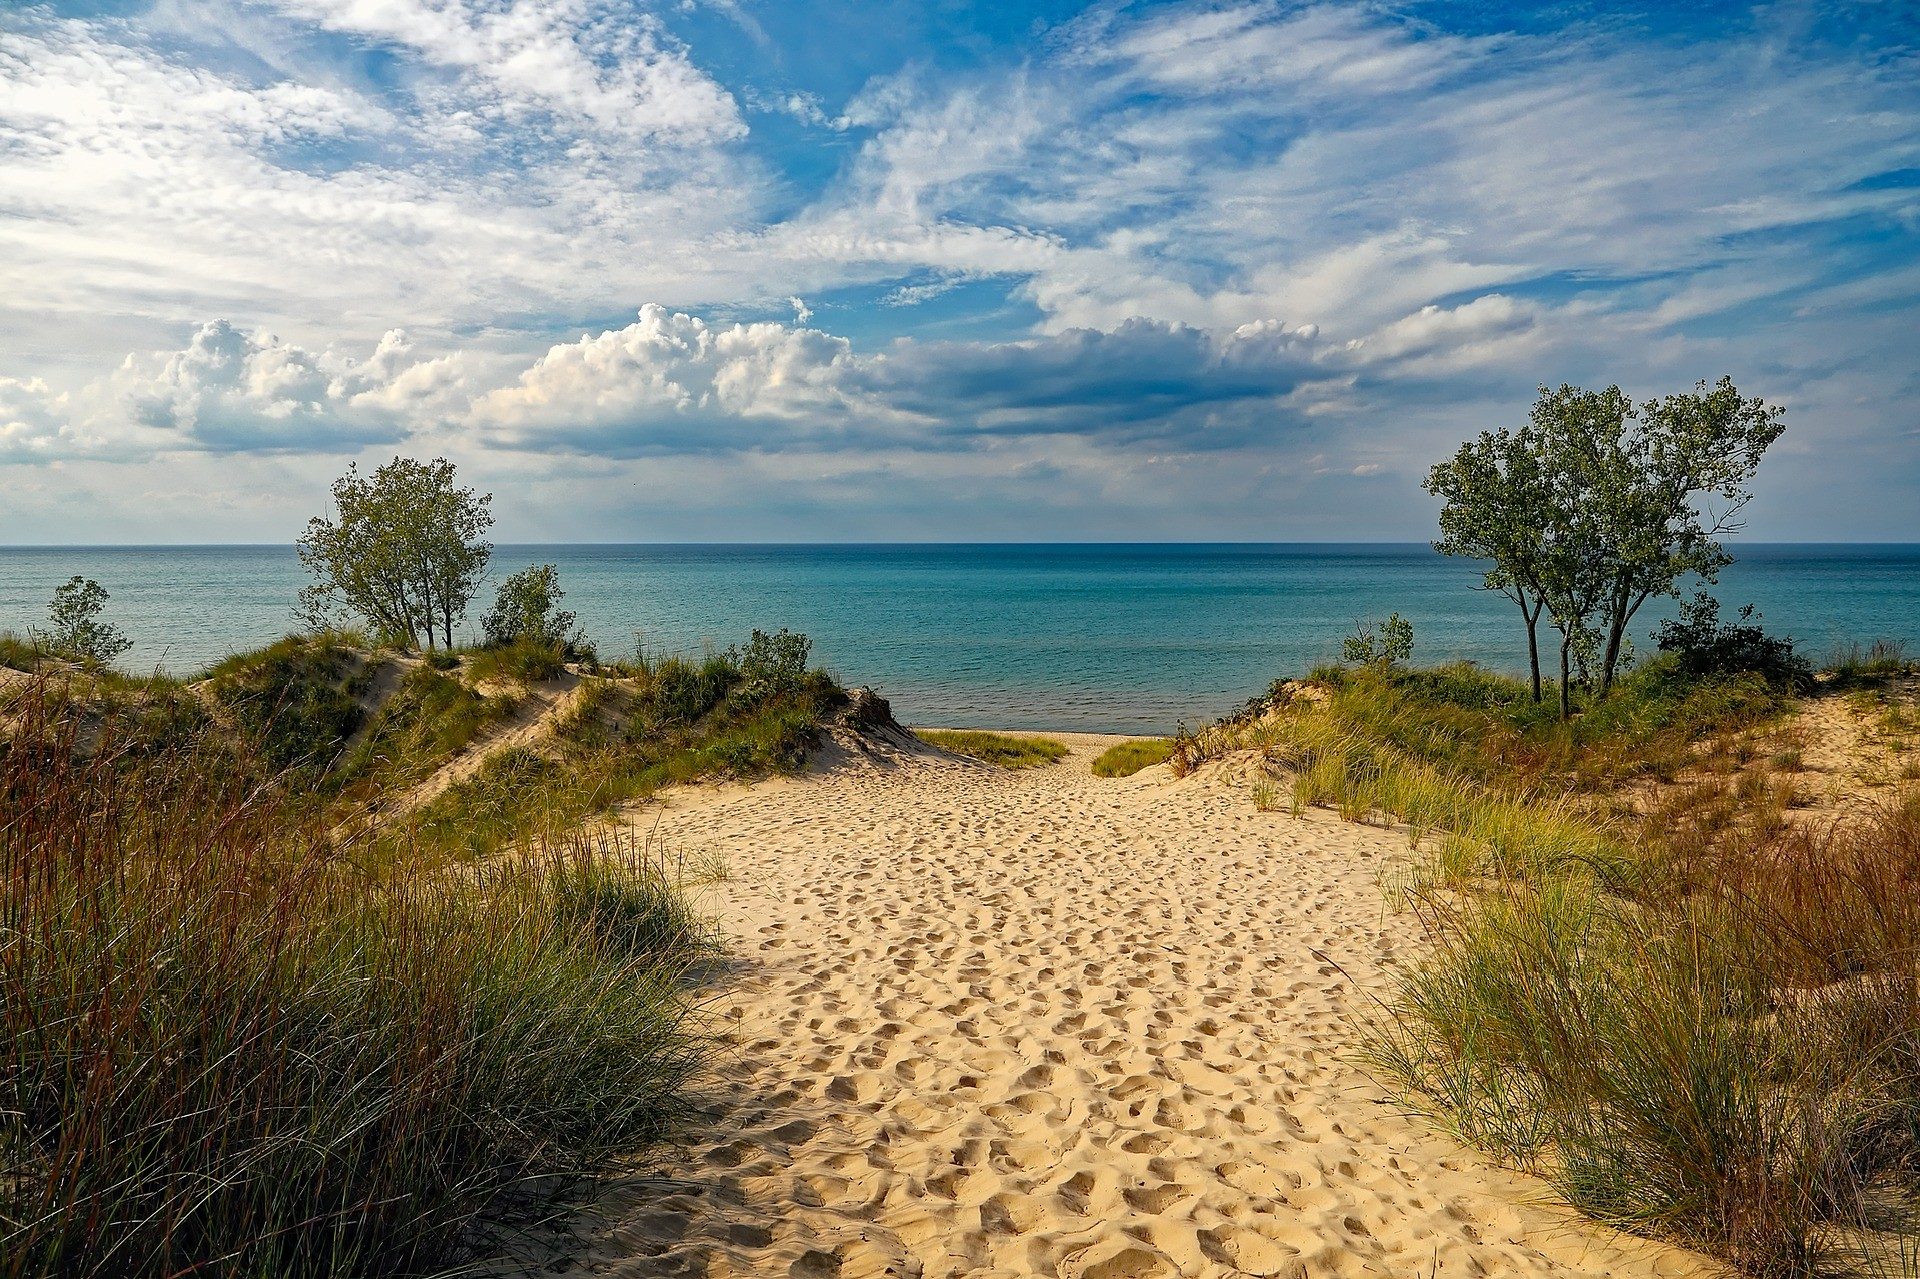 15427267839558465_by_hans3595_indiana-dunes-state-park-1848559_1920